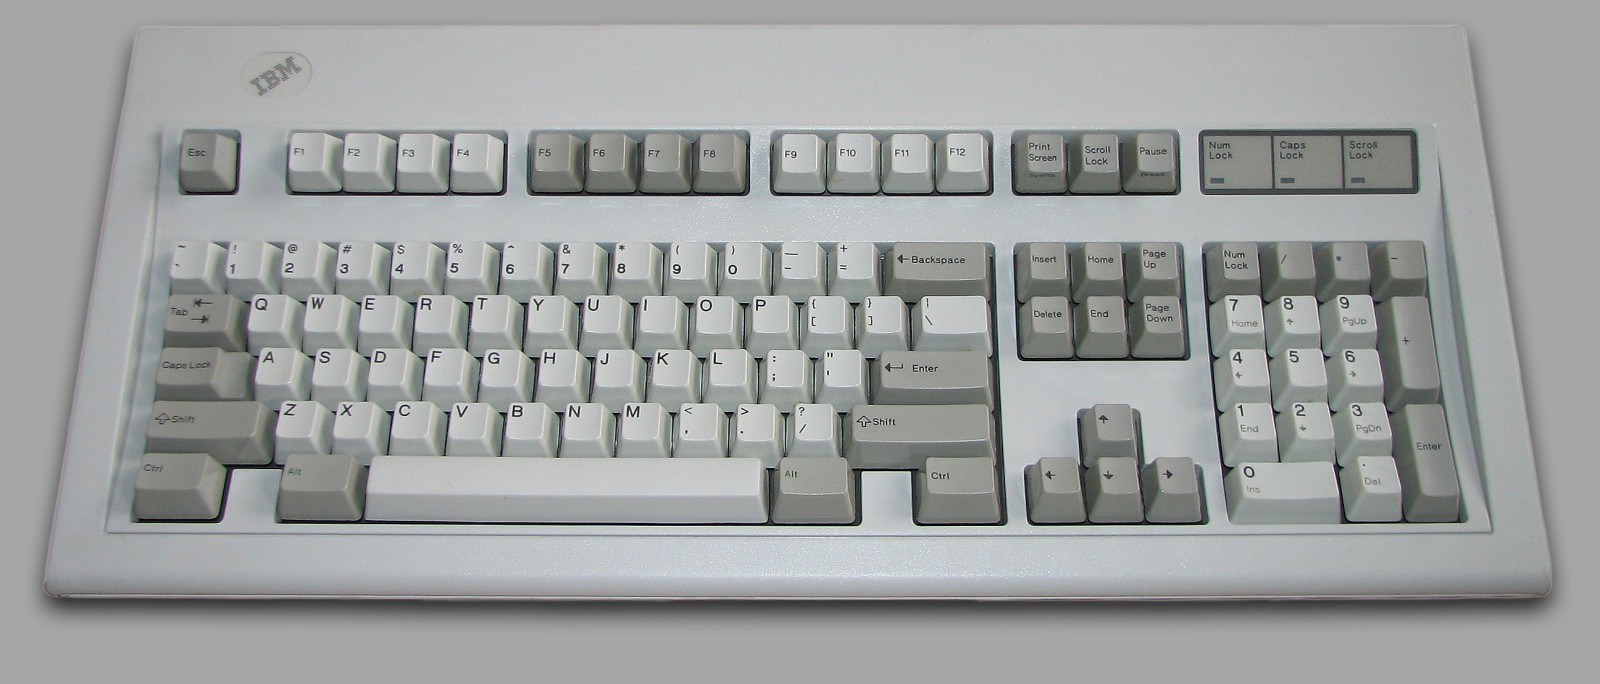 IBM Model M Keyboard Simulator: https://webwit.nl/input/kbsim